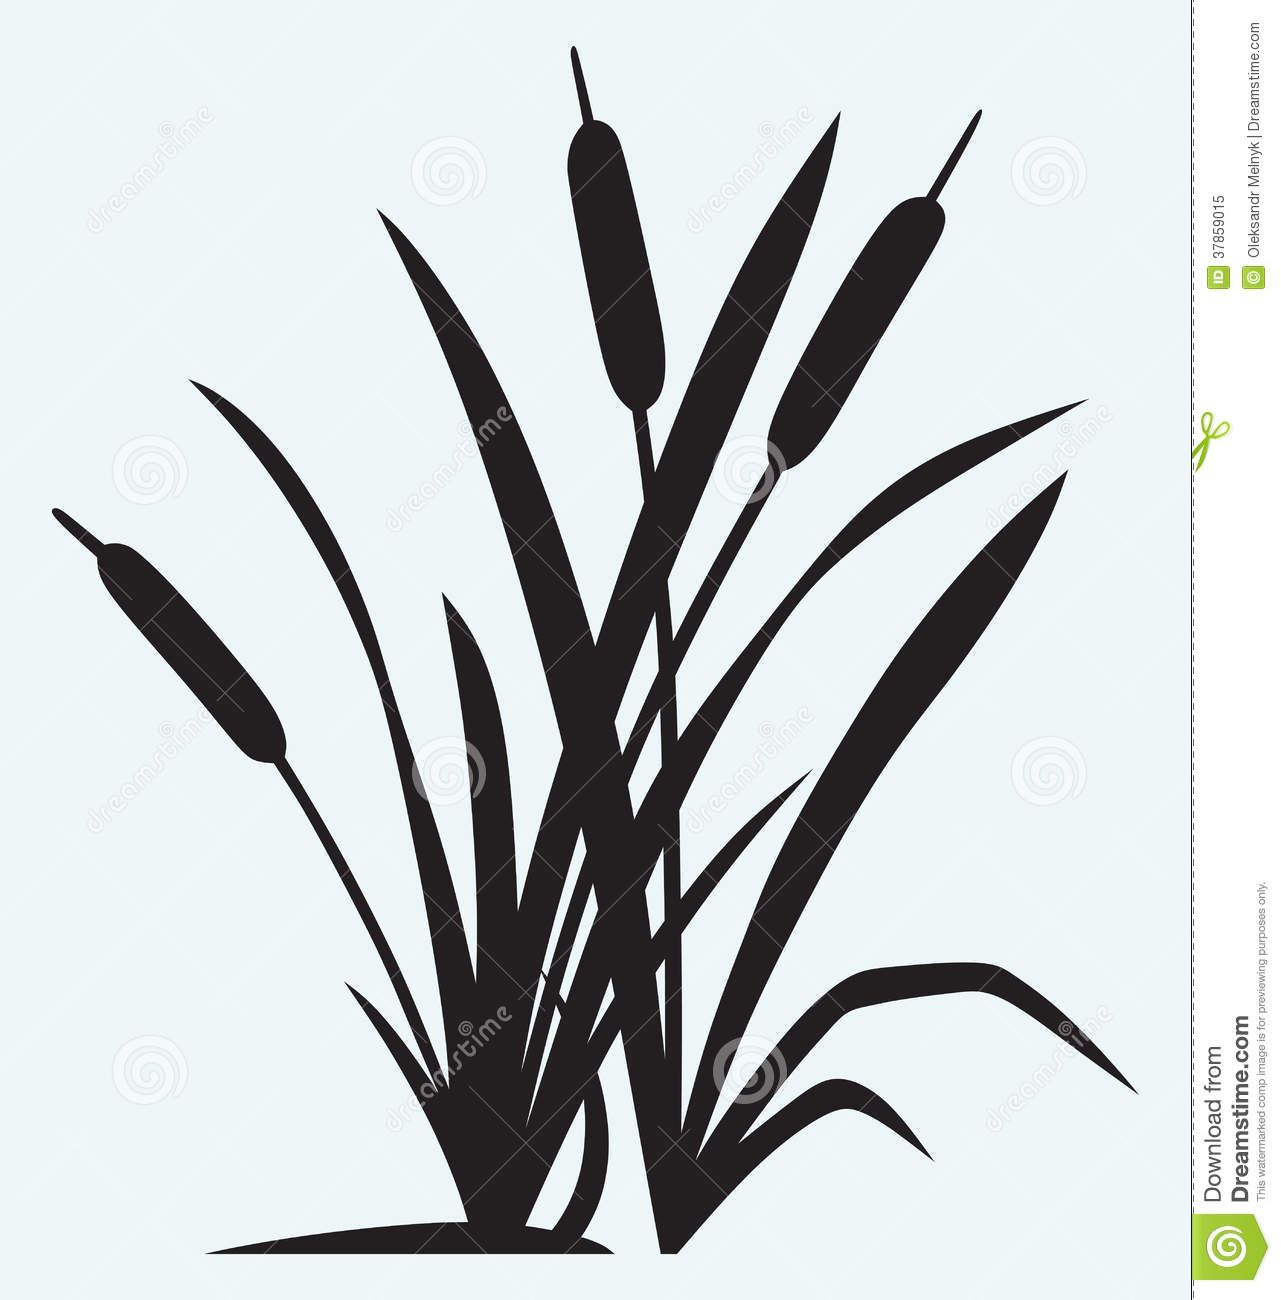 Dandelion Wall Art Stickers Cattails Vector Cattail Silhouette Stock Scan N Cut